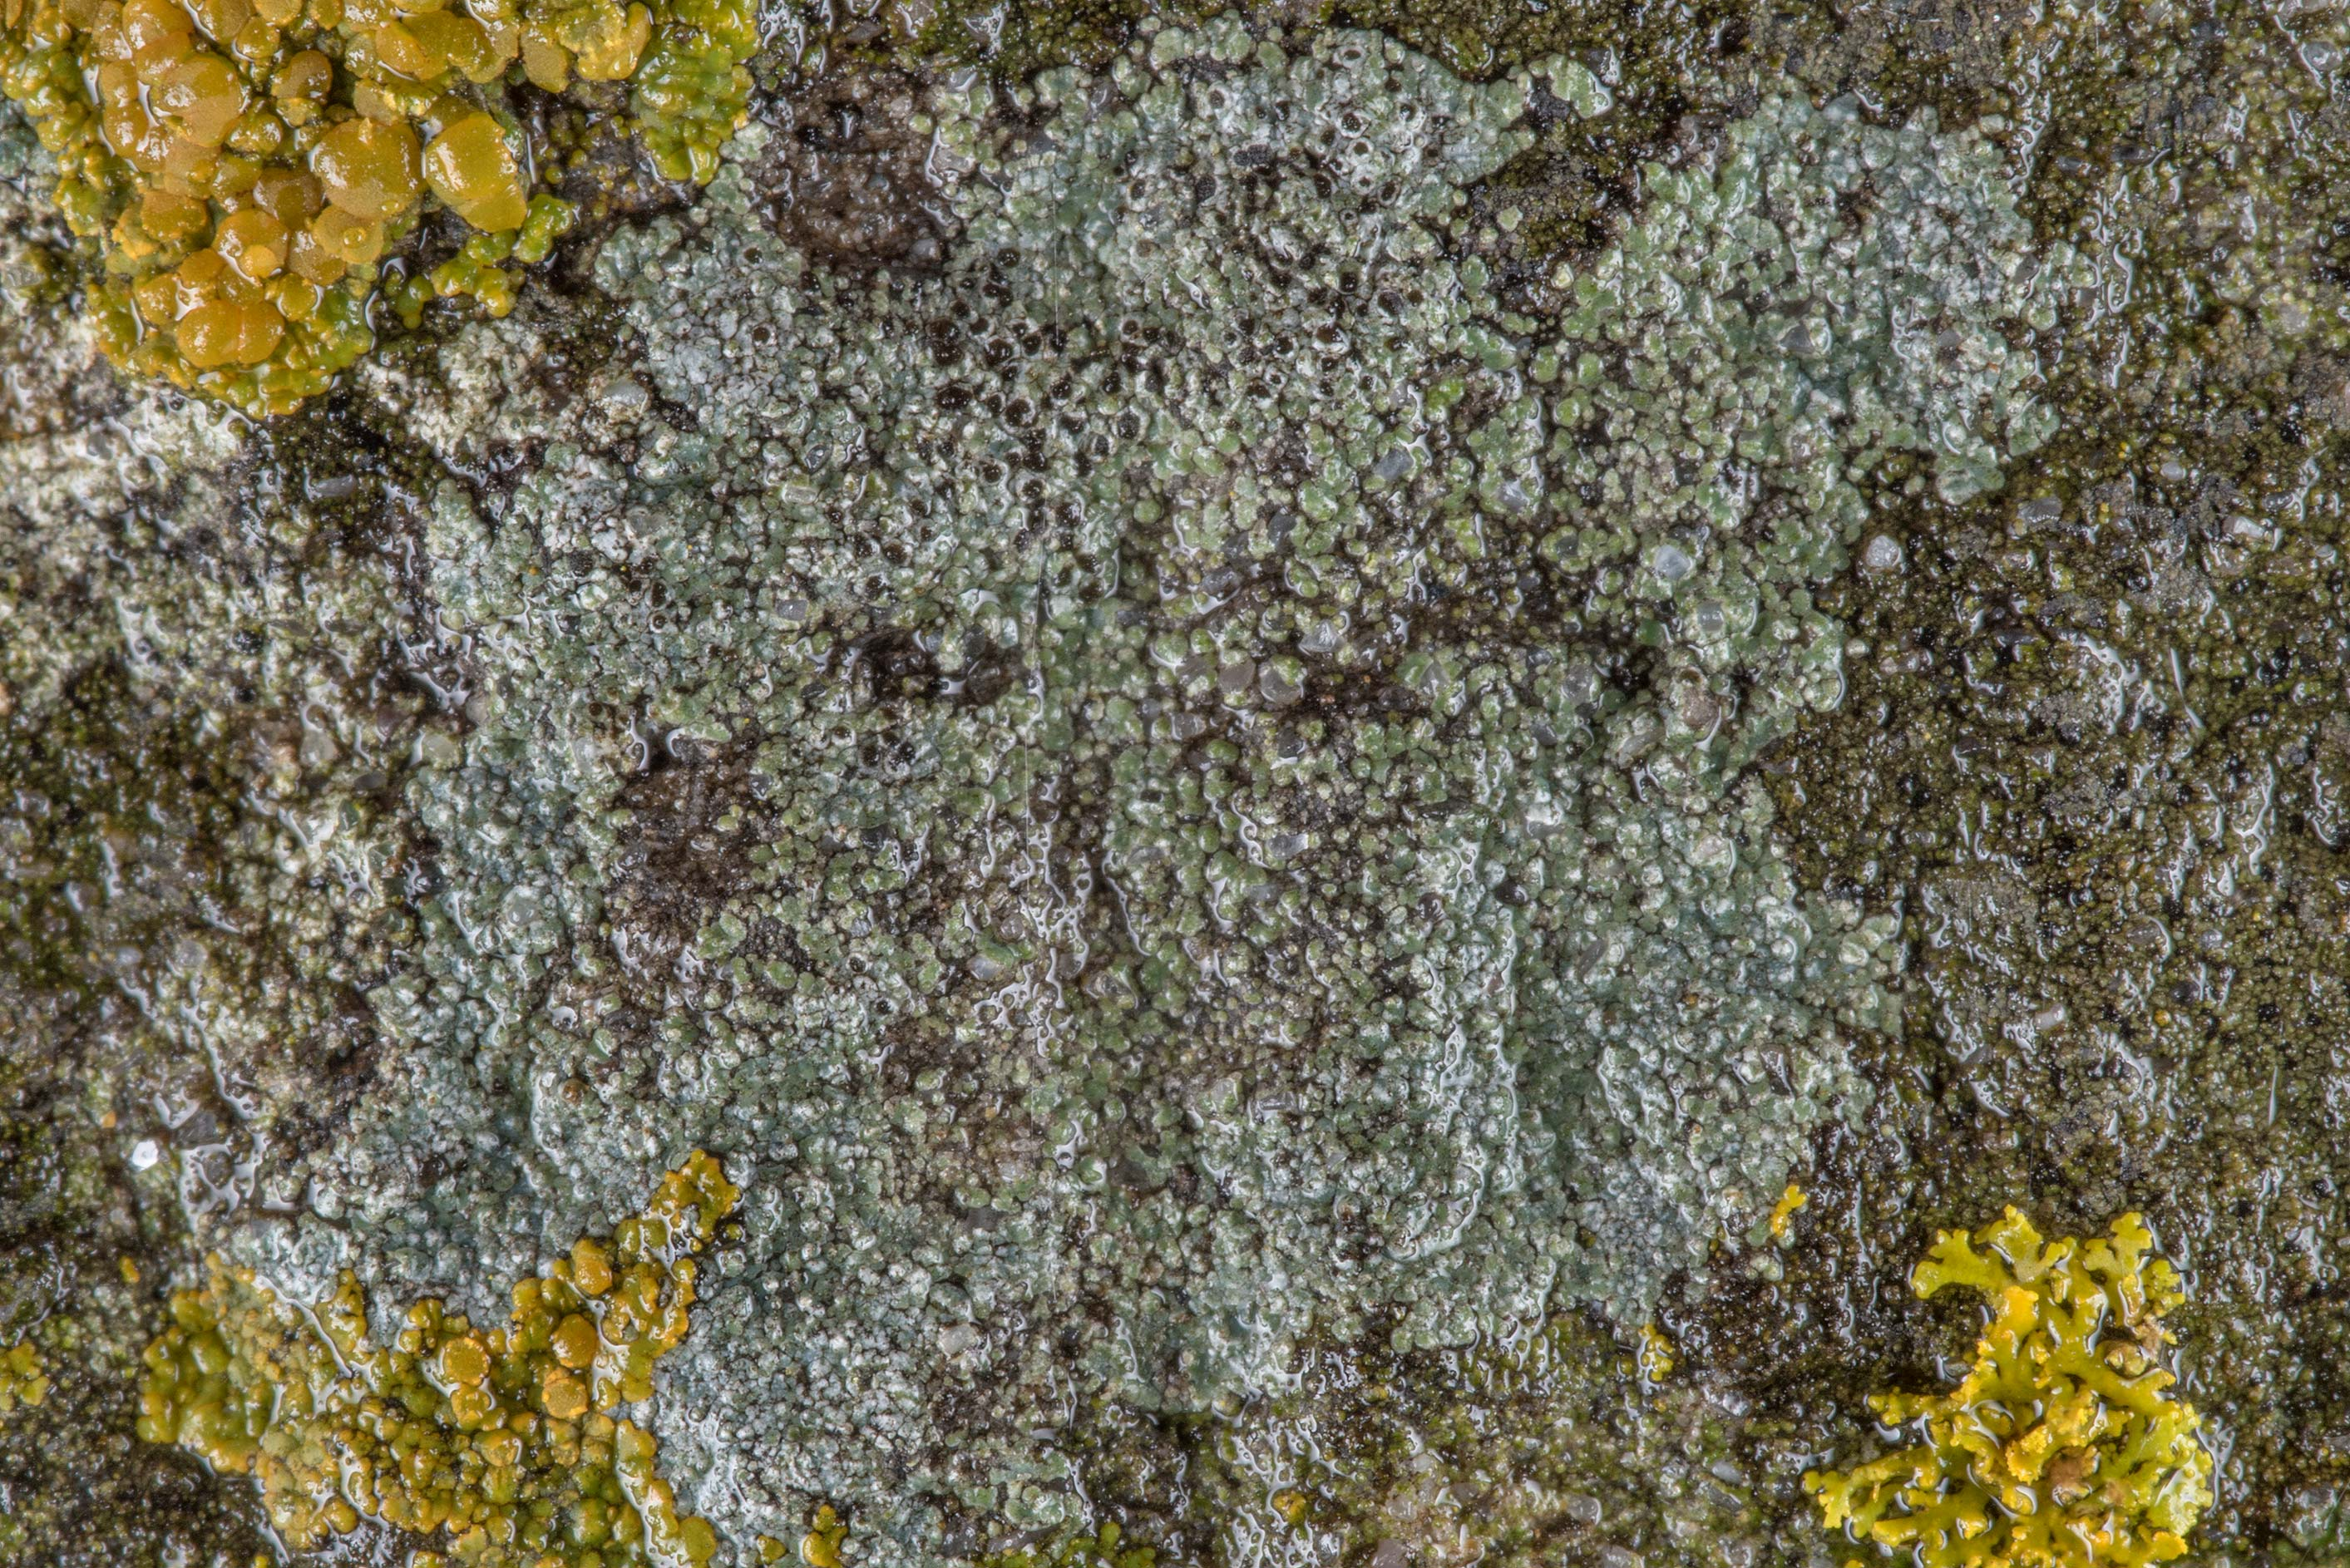 Pepper-spore lichen (Rinodina) on a tombstone in...Cemetery near Independence. Texas